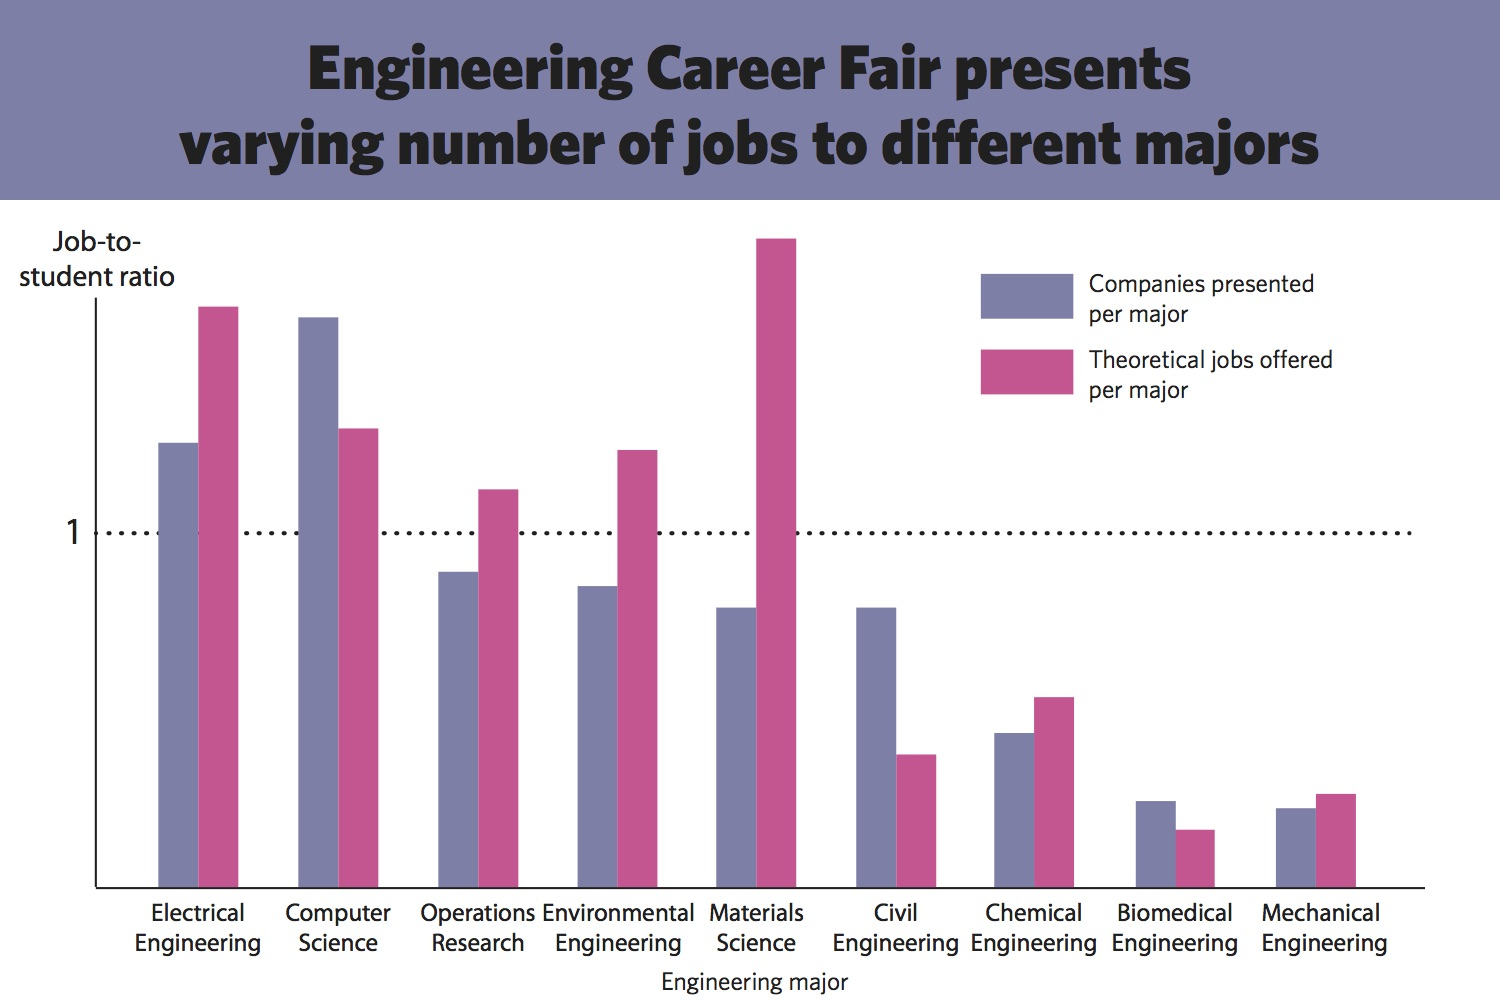 For some engineers, sparse job offerings at career fairs